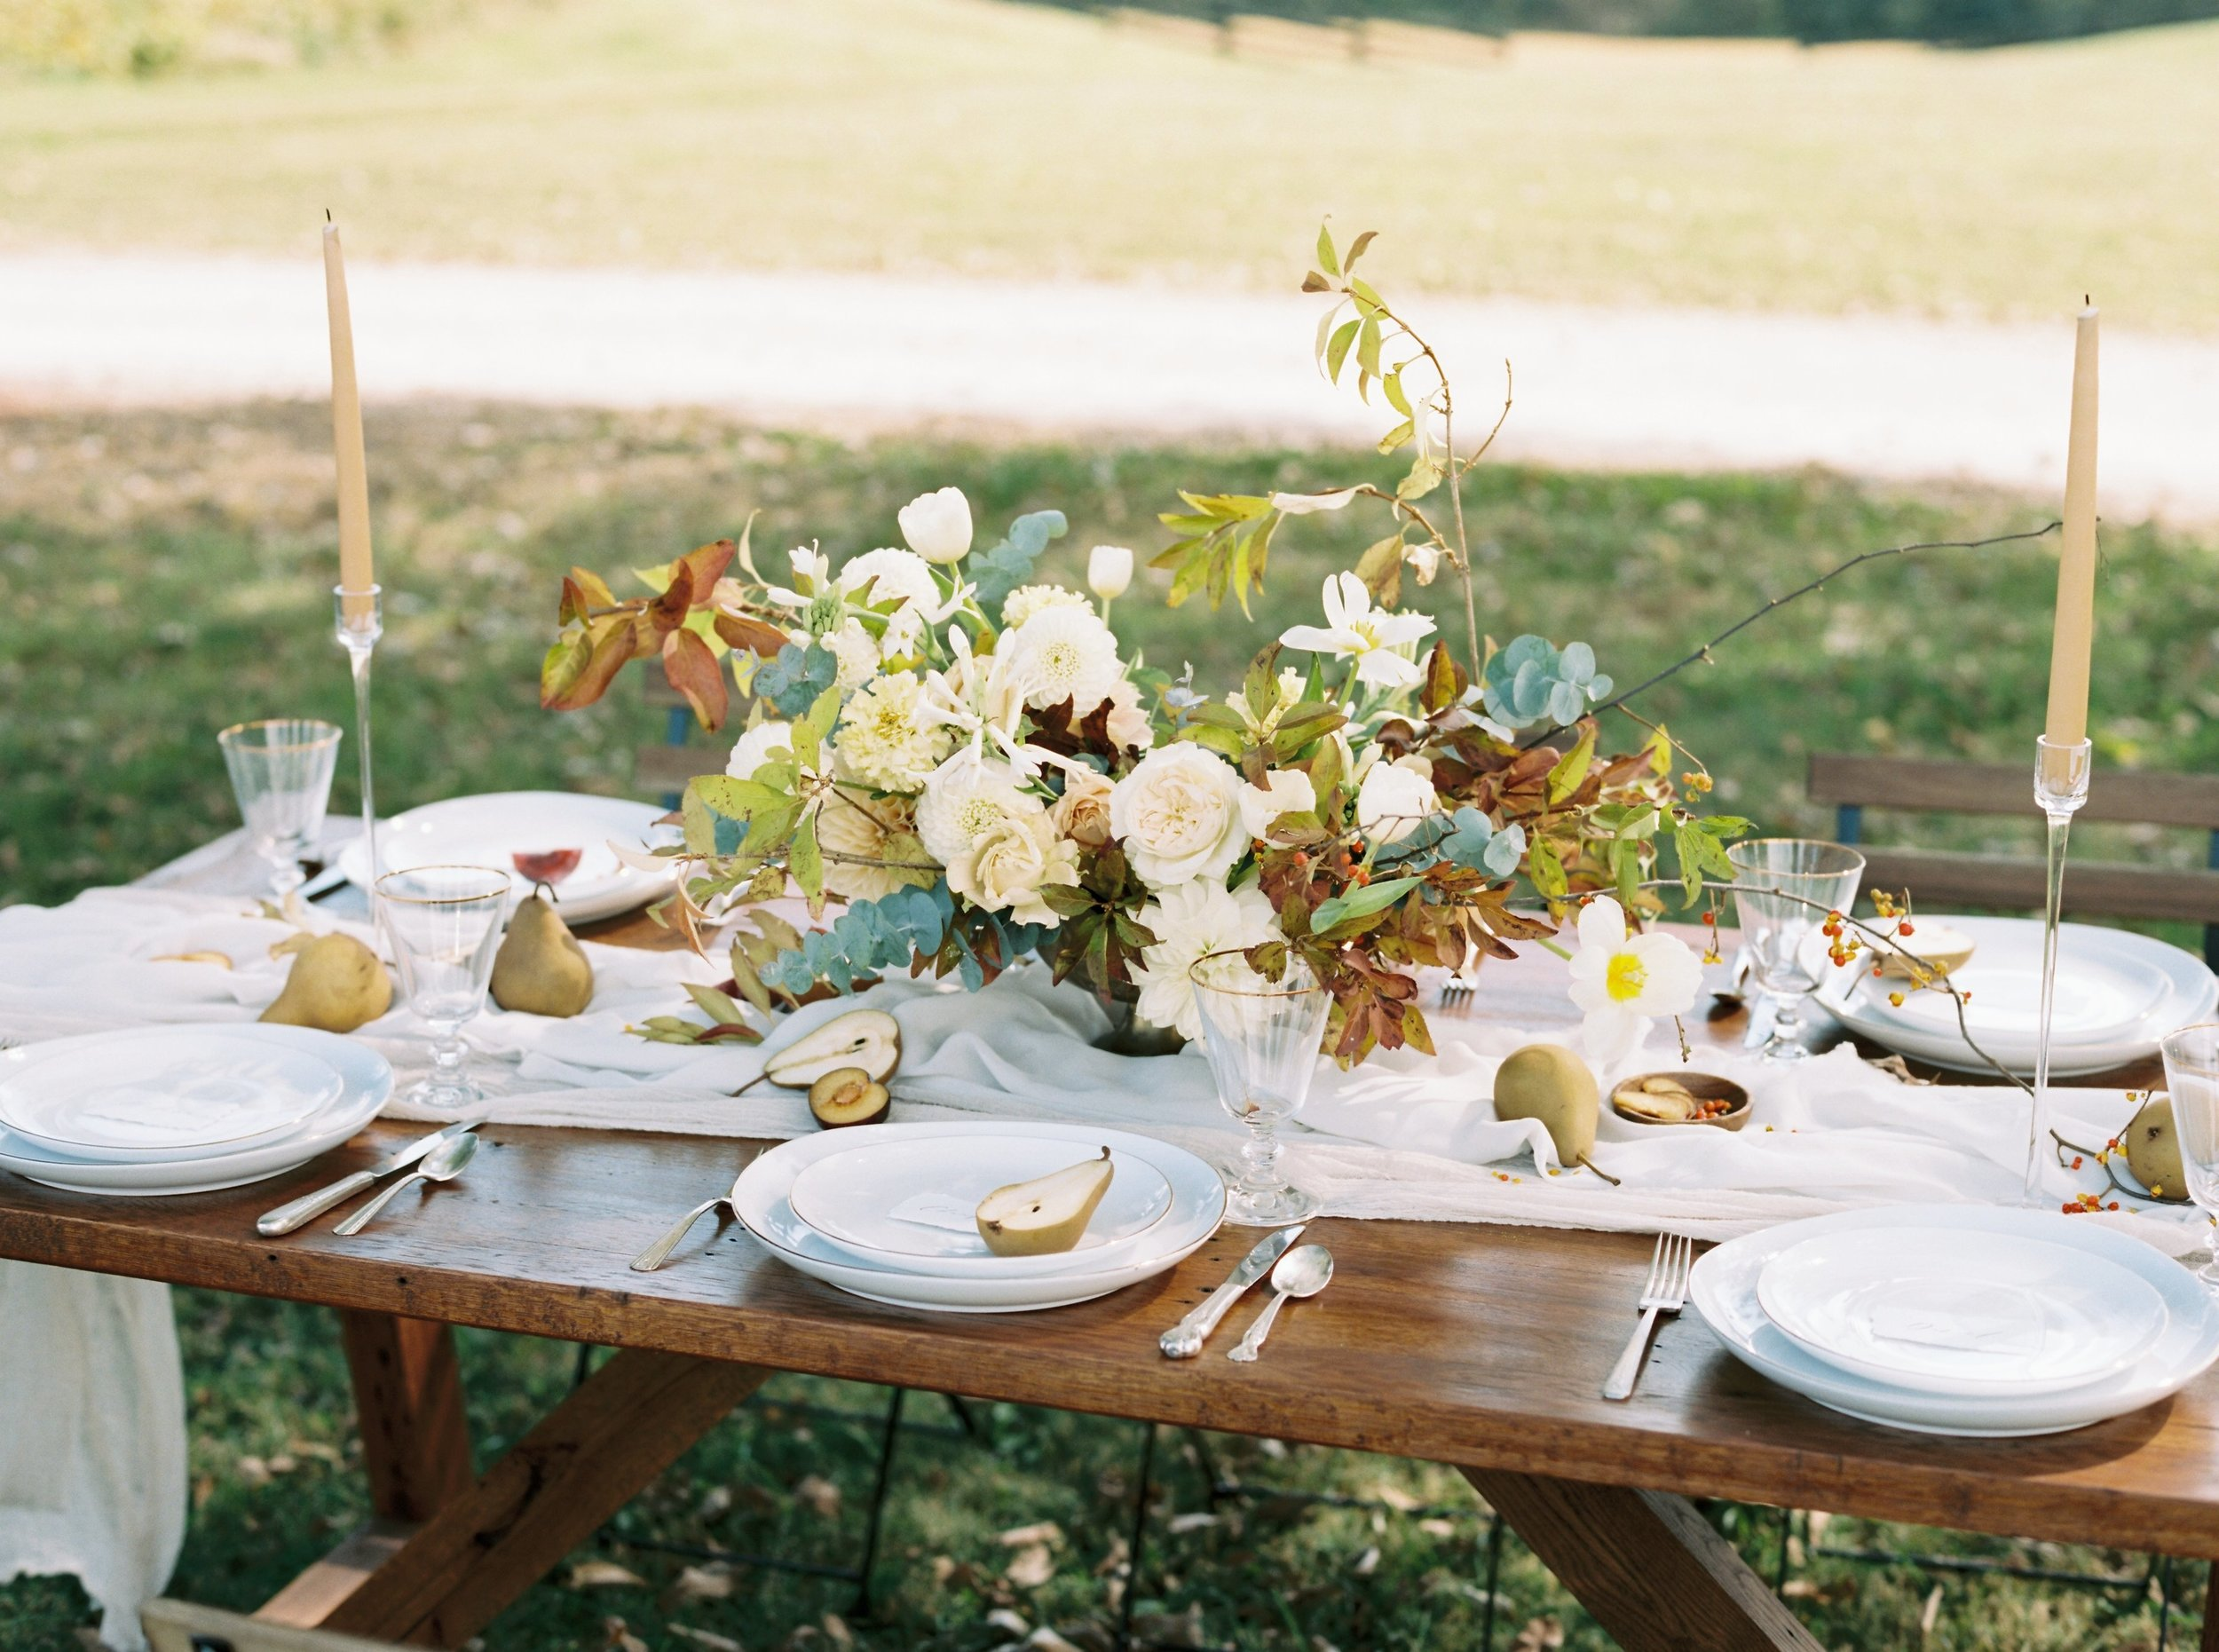 Styling:  Events Held Dear   / Photography:  Kyle John Photography  / Location:  Richwood on the River  / Fabrics:  Stella Wolfe  / Stationary:  Plume Calligraphy